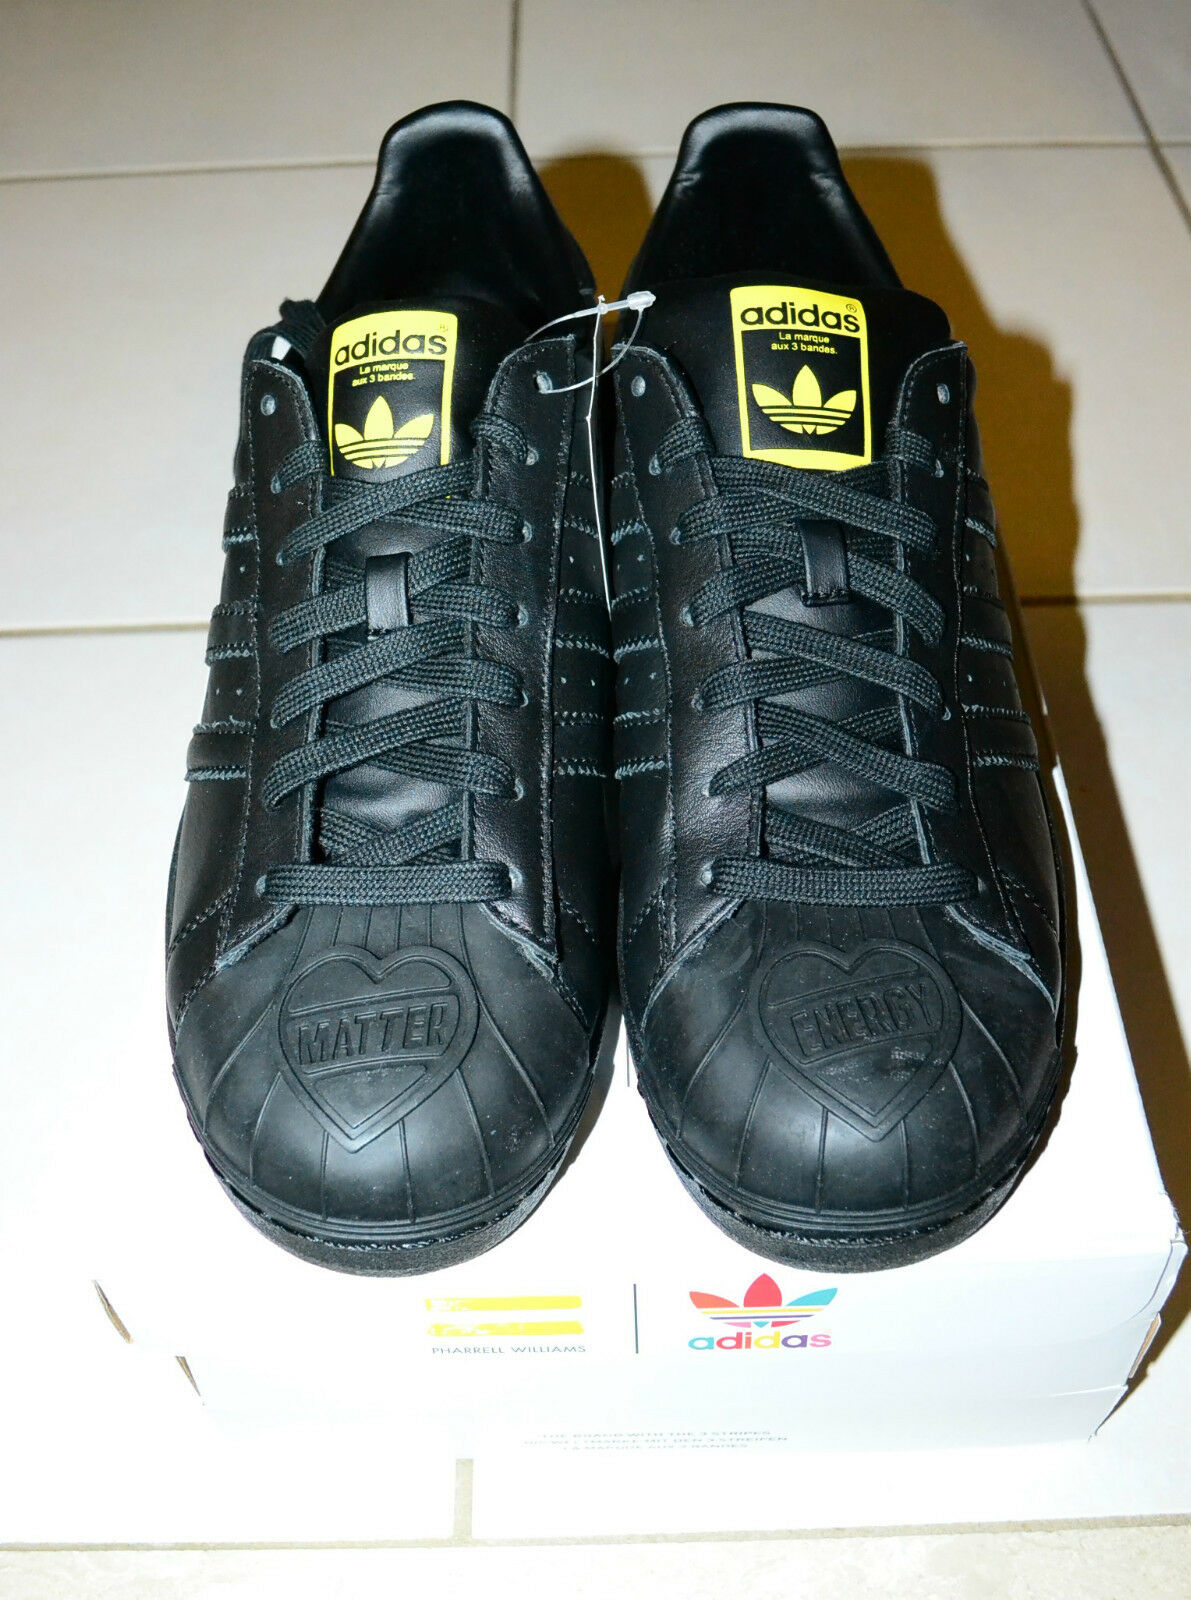 ADIDAS Men Pharrell Williams Supershell Superstar MEN Größe 10 schwarz S83345 NEW